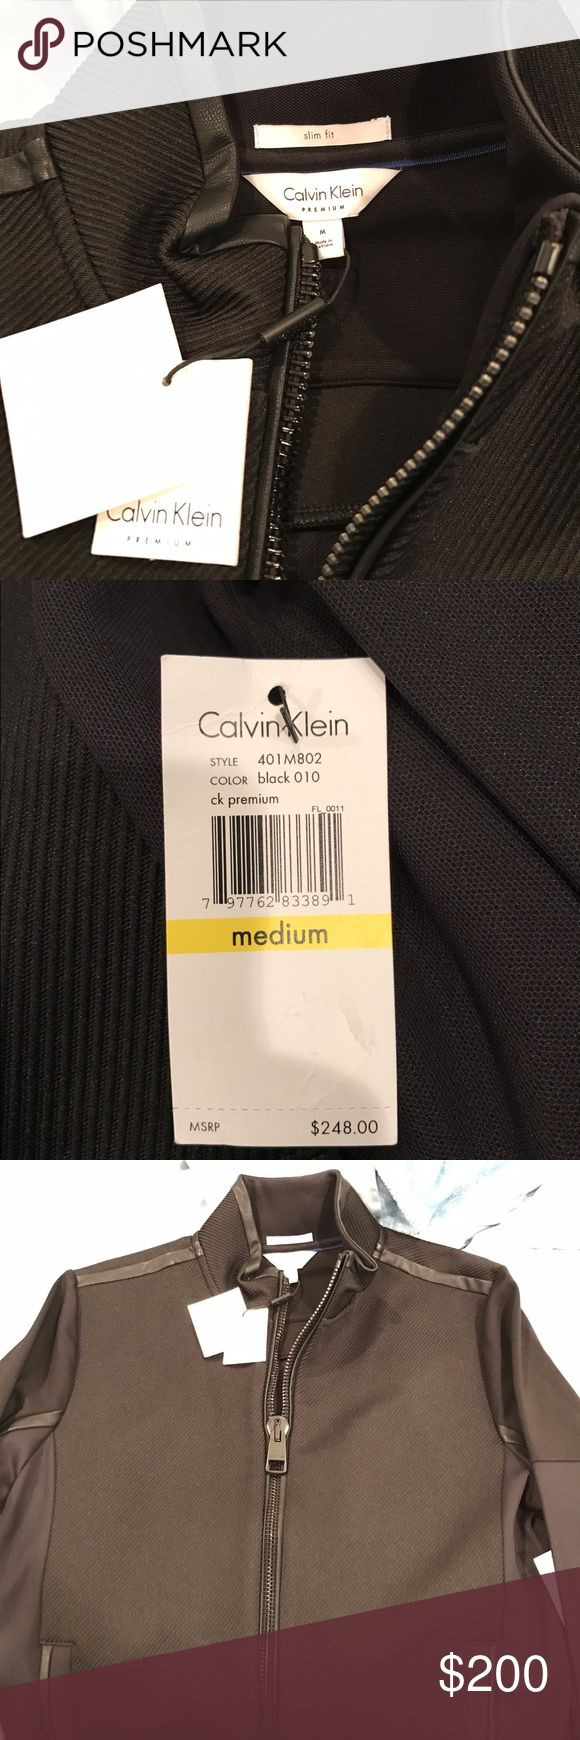 Calvin Klein slim size M bomber jacket tag $248 New with tags never worn 2017 Calvin Klein bomber jacket. Retails for $248 I am selling at a discount. In hand will ship immediately. Calvin Klein Jackets & Coats Bomber & Varsity